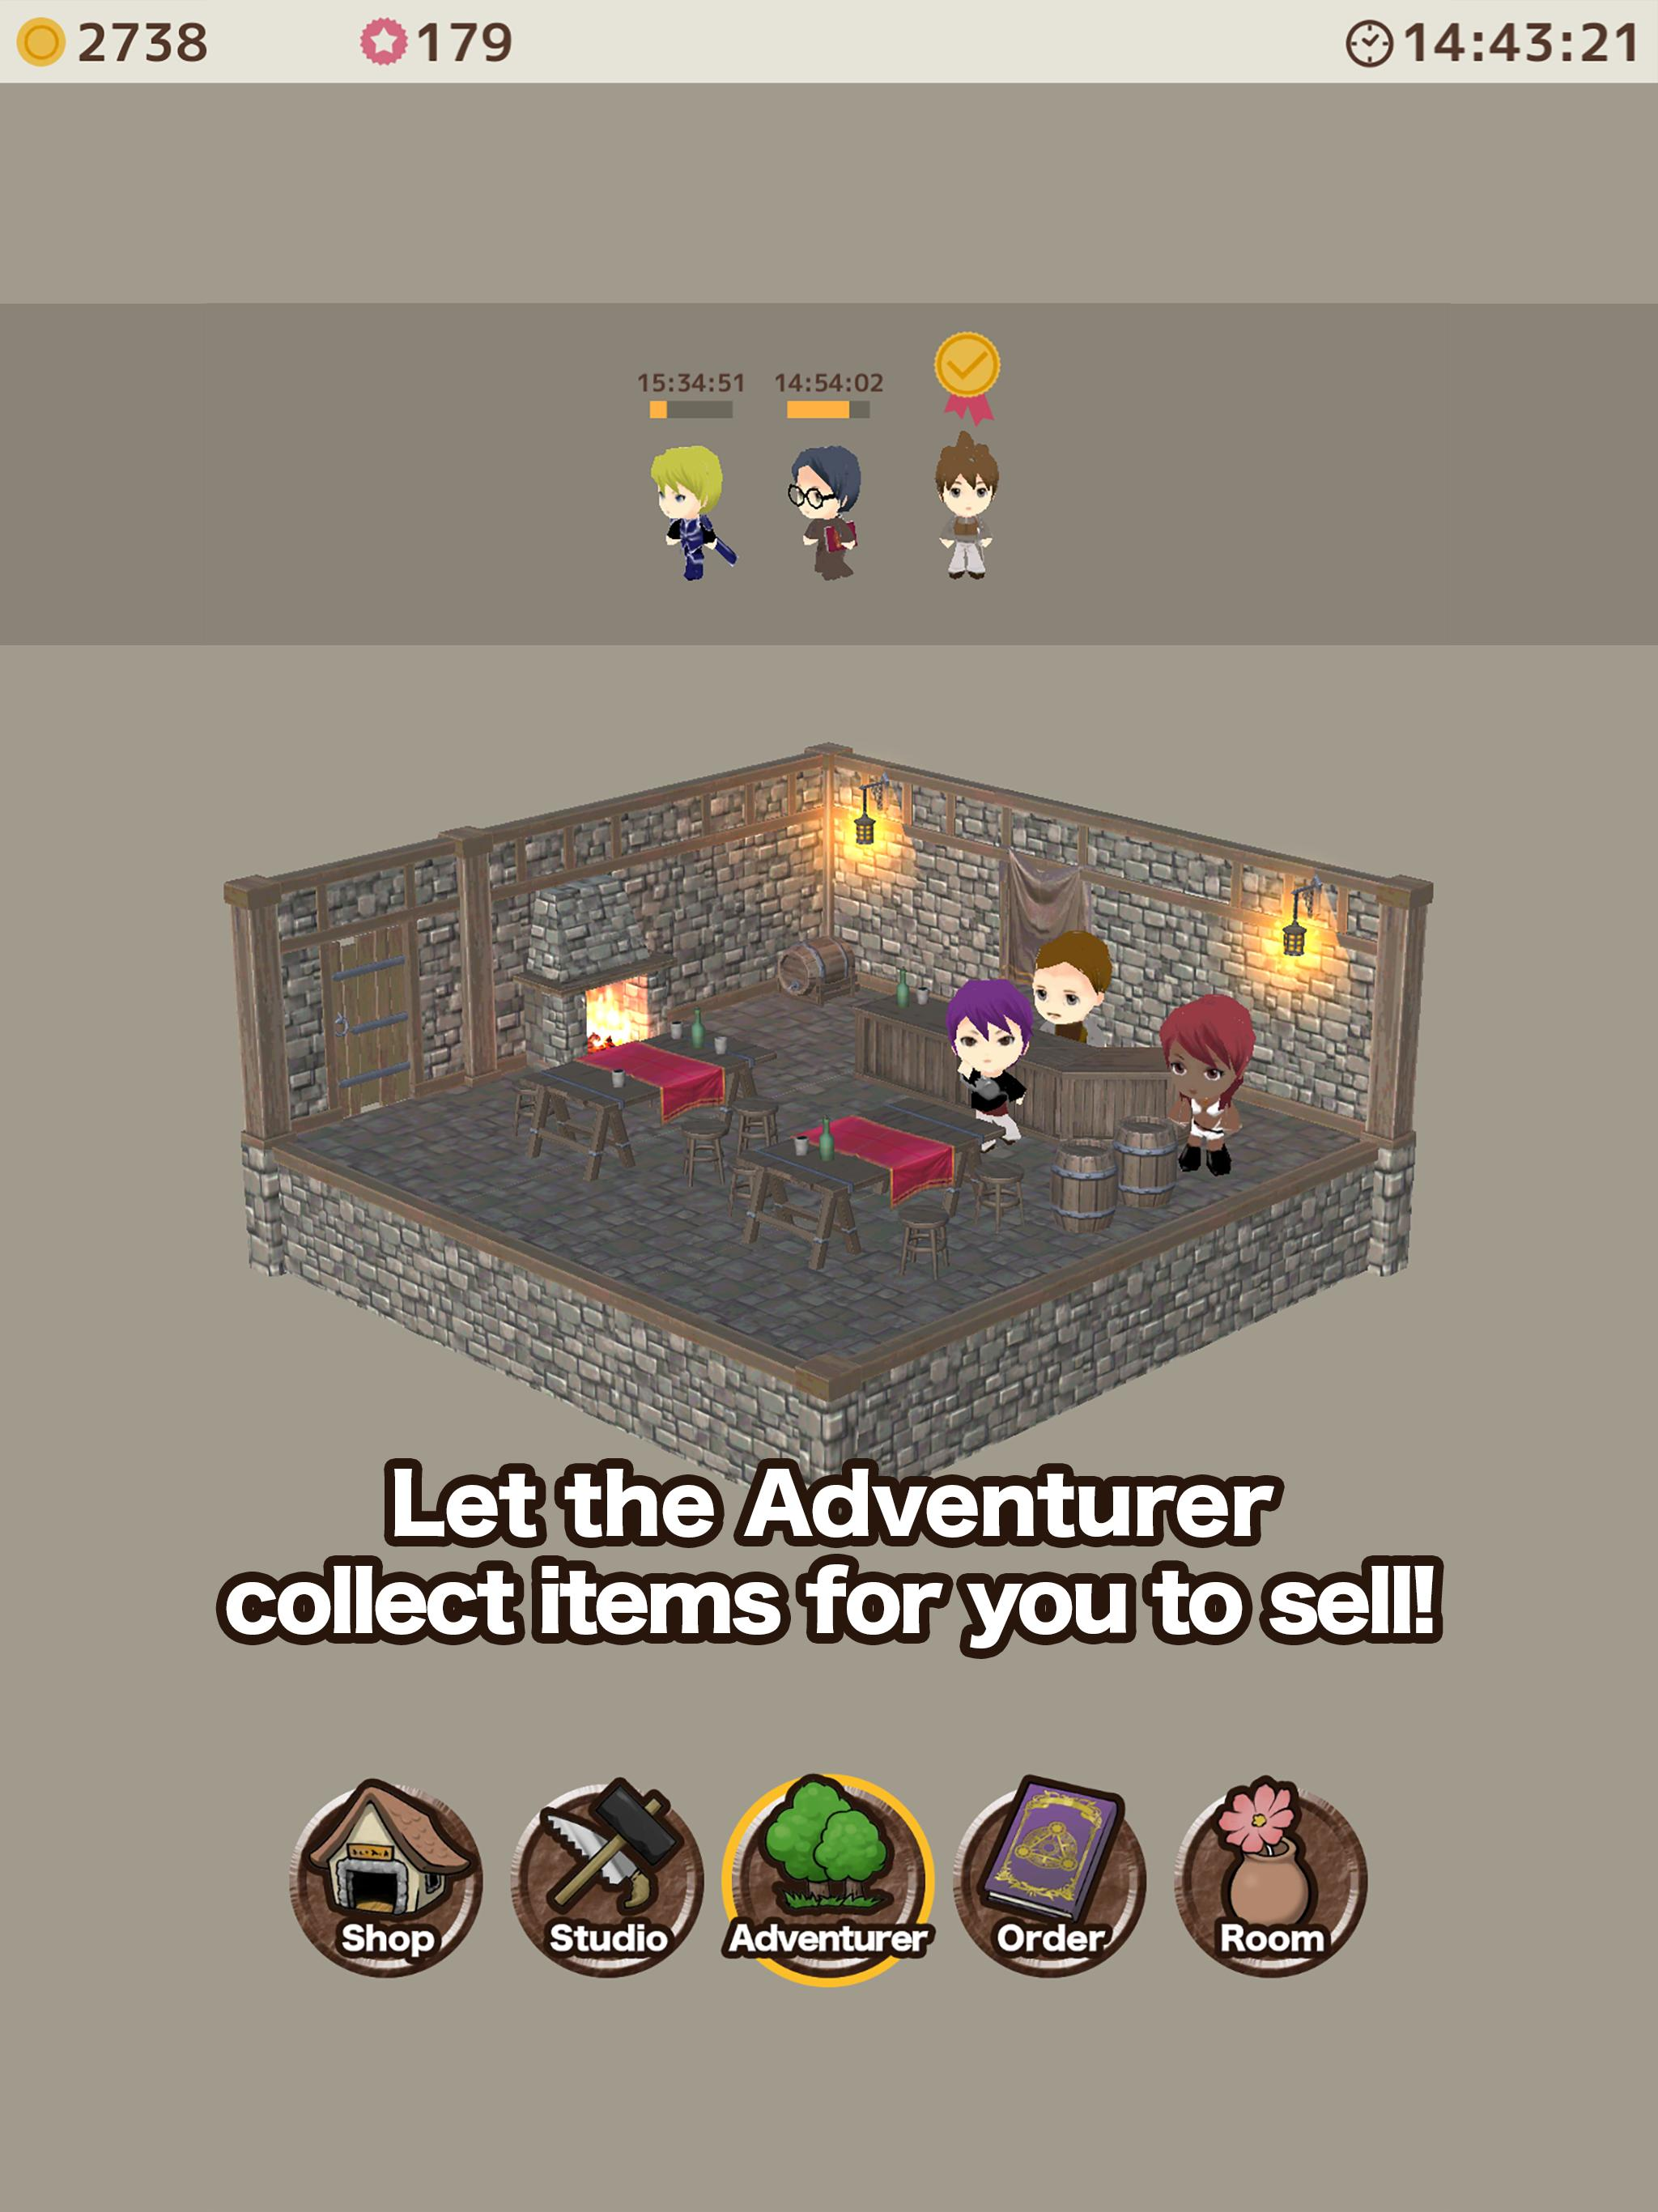 Item shop for Android - APK Download